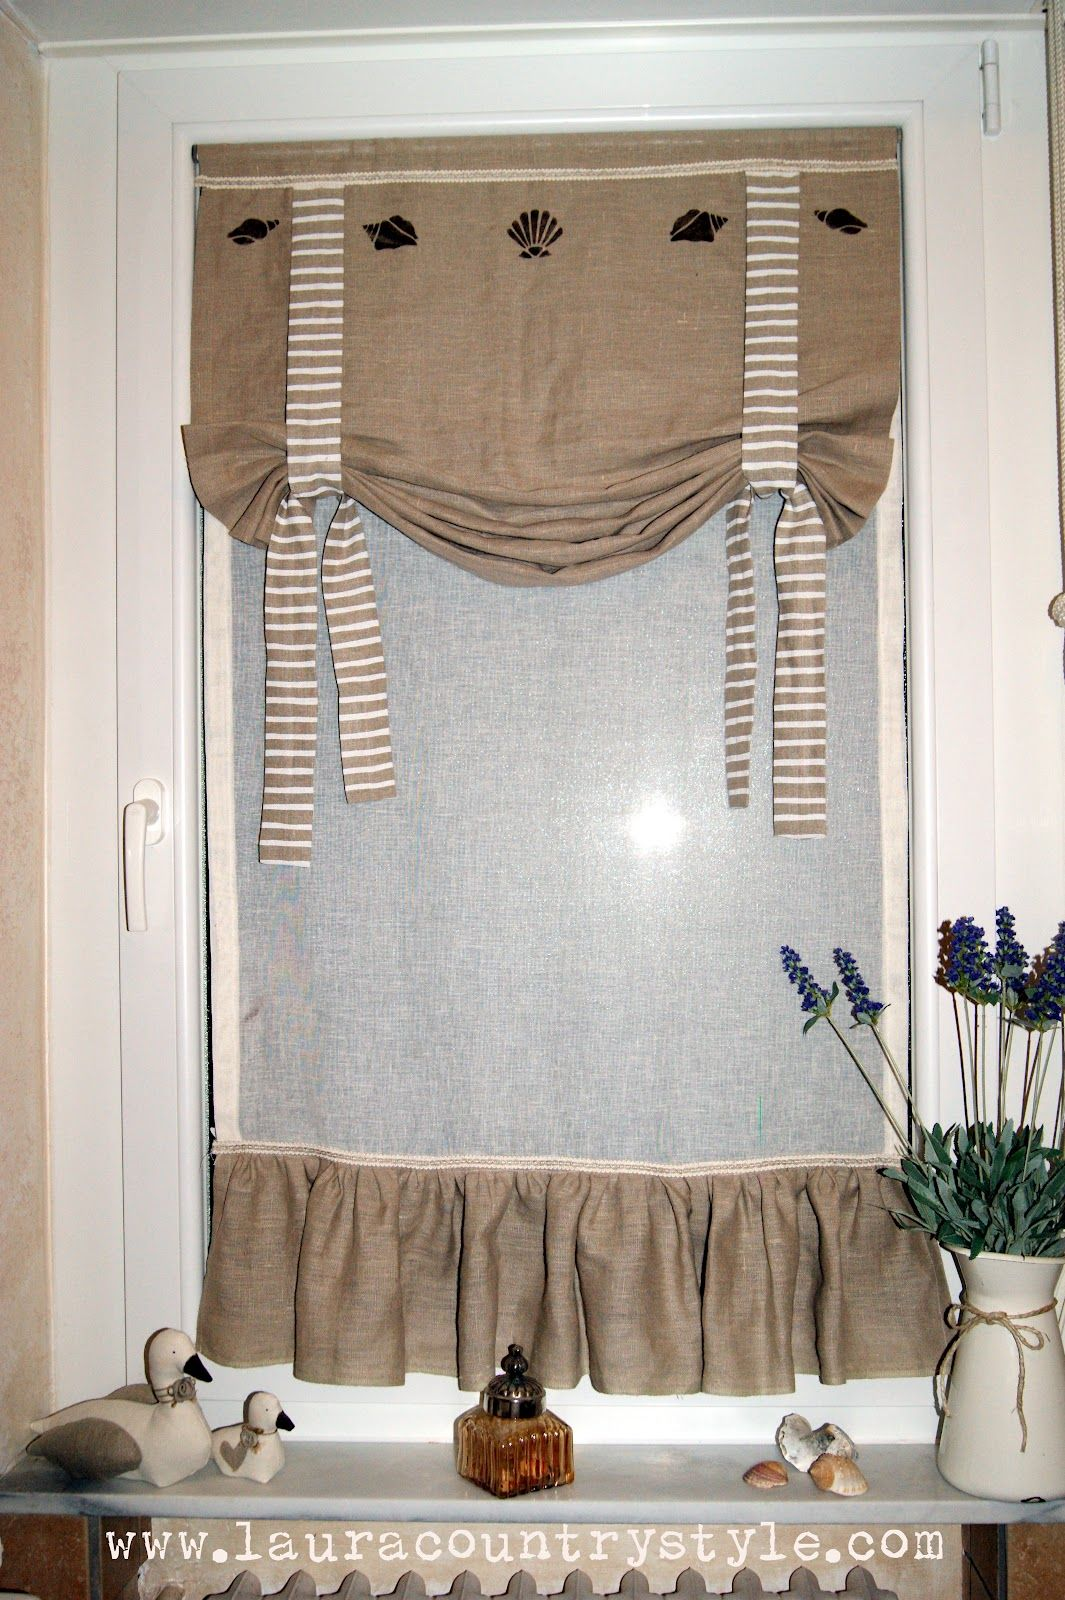 tende da bagno - Cerca con Google  Tende  Pinterest  Curtain ideas, Window and Valance